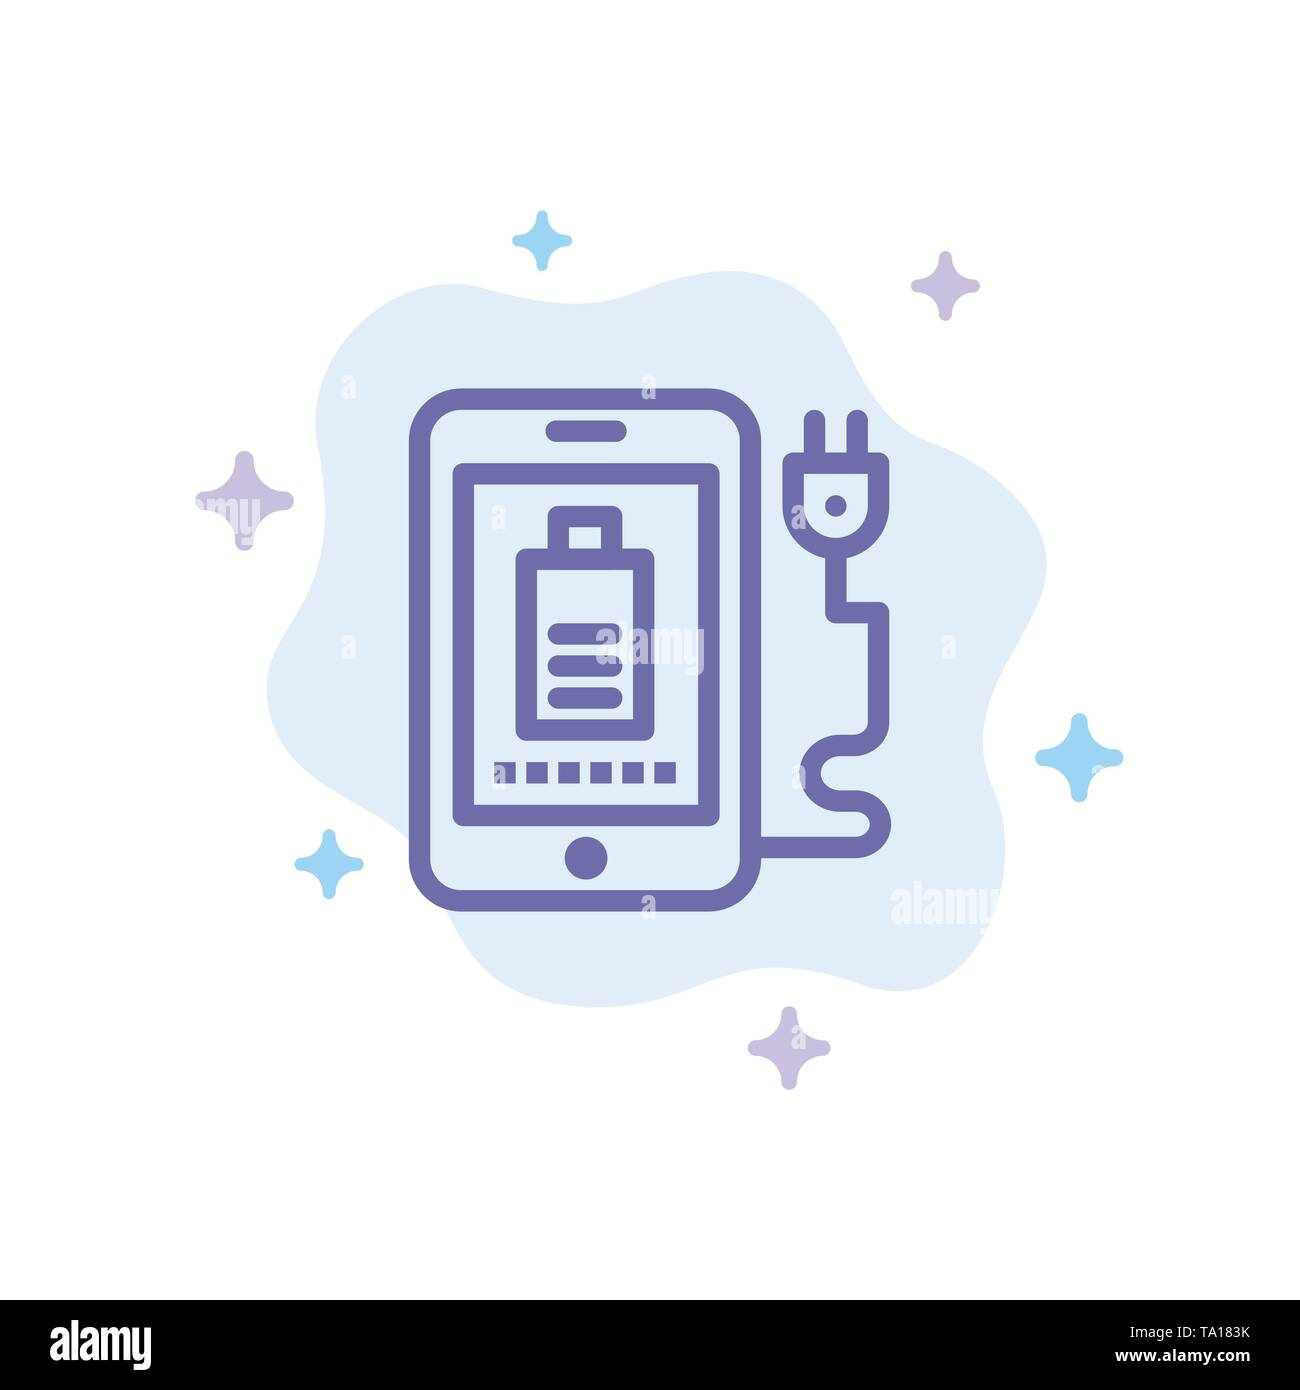 Mobile, Charge, Full, Plug Blue Icon on Abstract Cloud Background - Stock Image